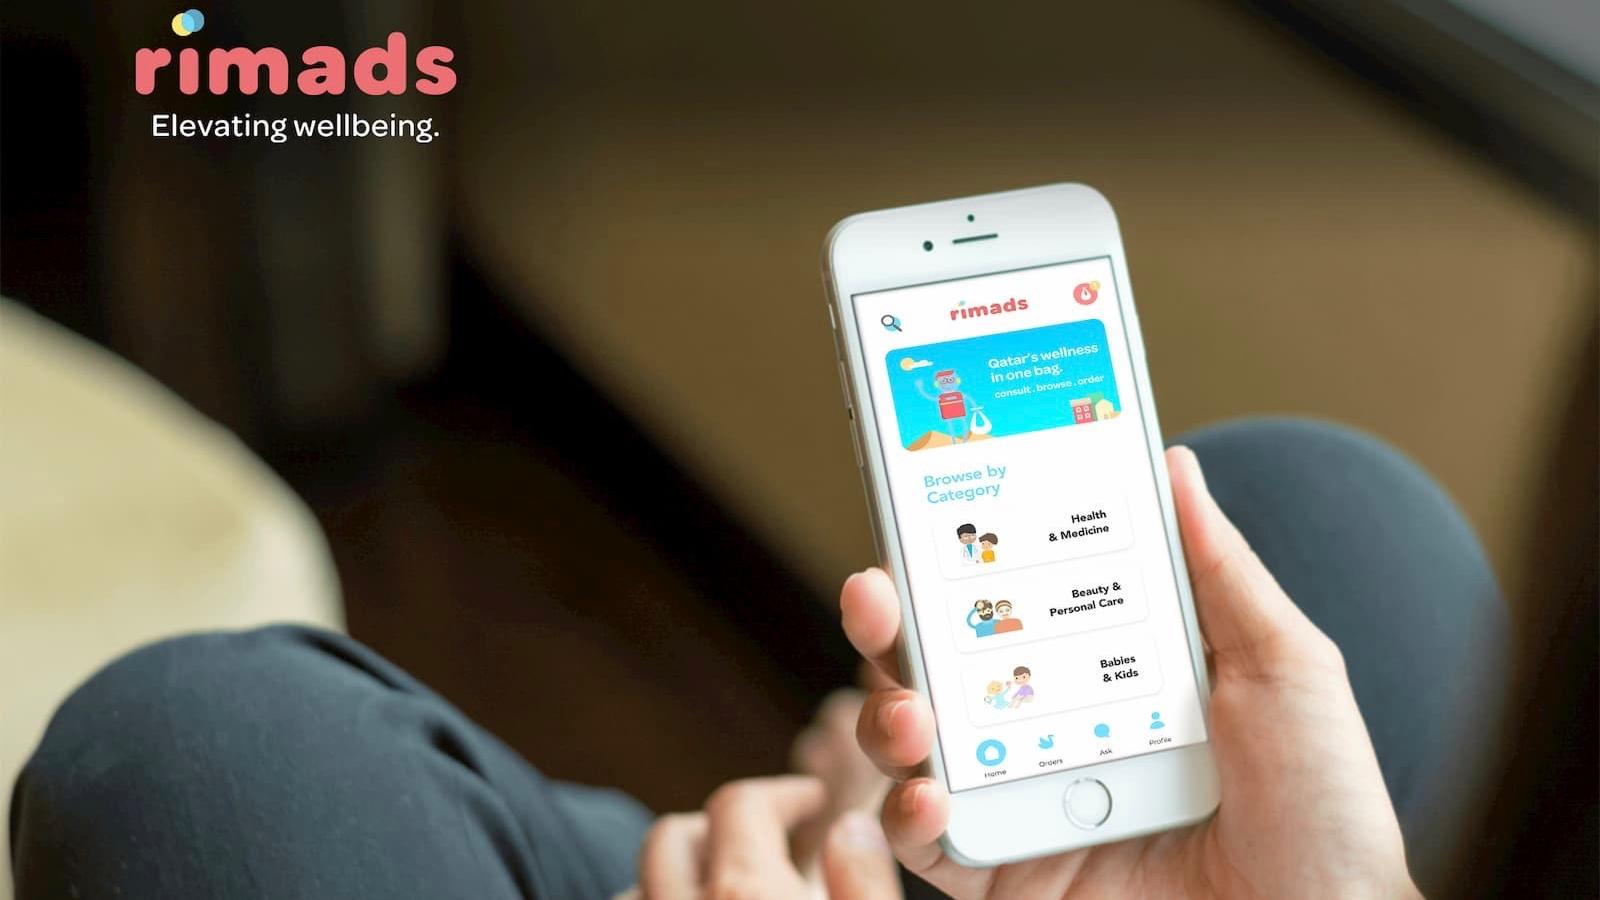 Rimads app offers swift doorstep delivery for over-the-counter medicines, healthy living products